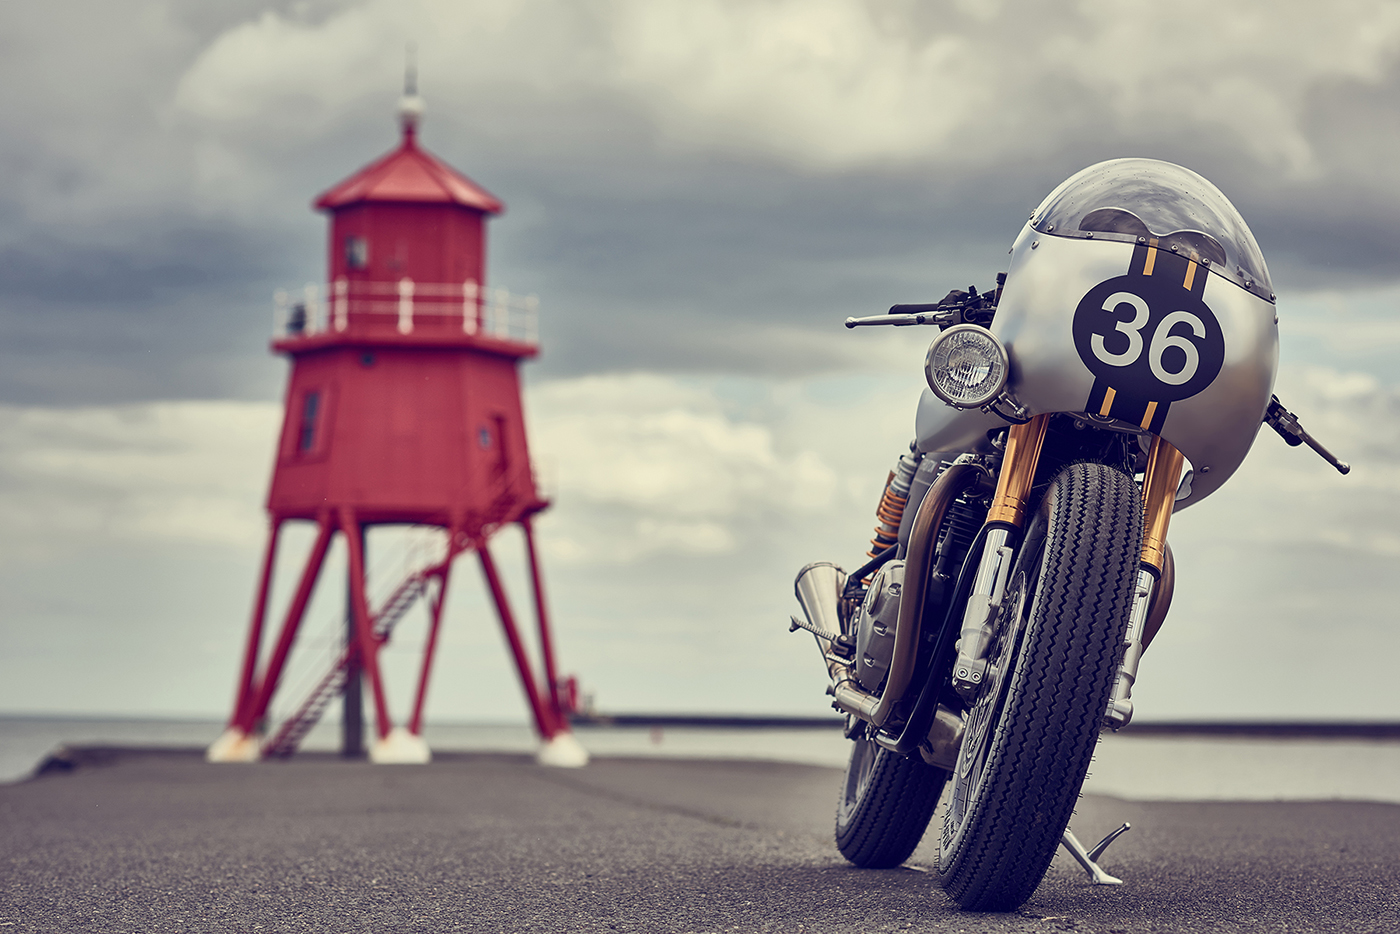 Barbour Triumph Thruxton by Down & Out Café Racers